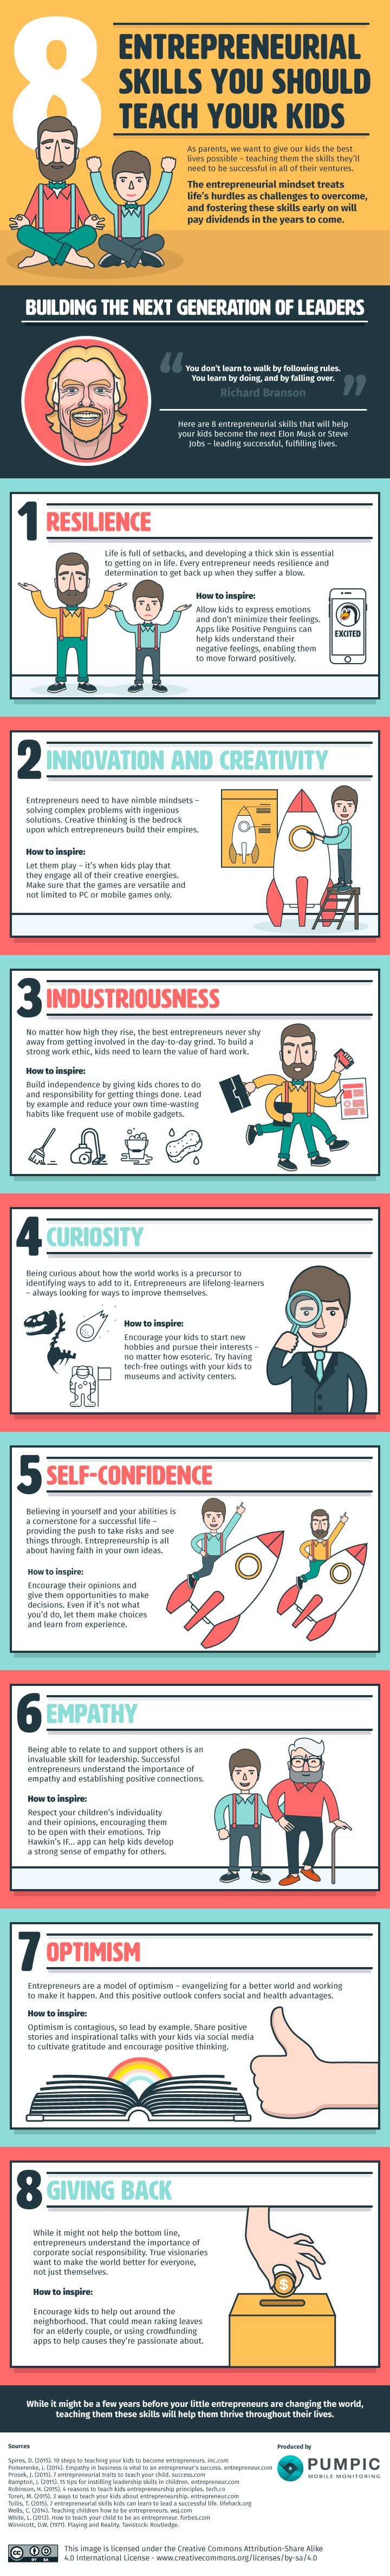 8 Entrepreneurial Skills You Should Teach Your Kids - #infographic